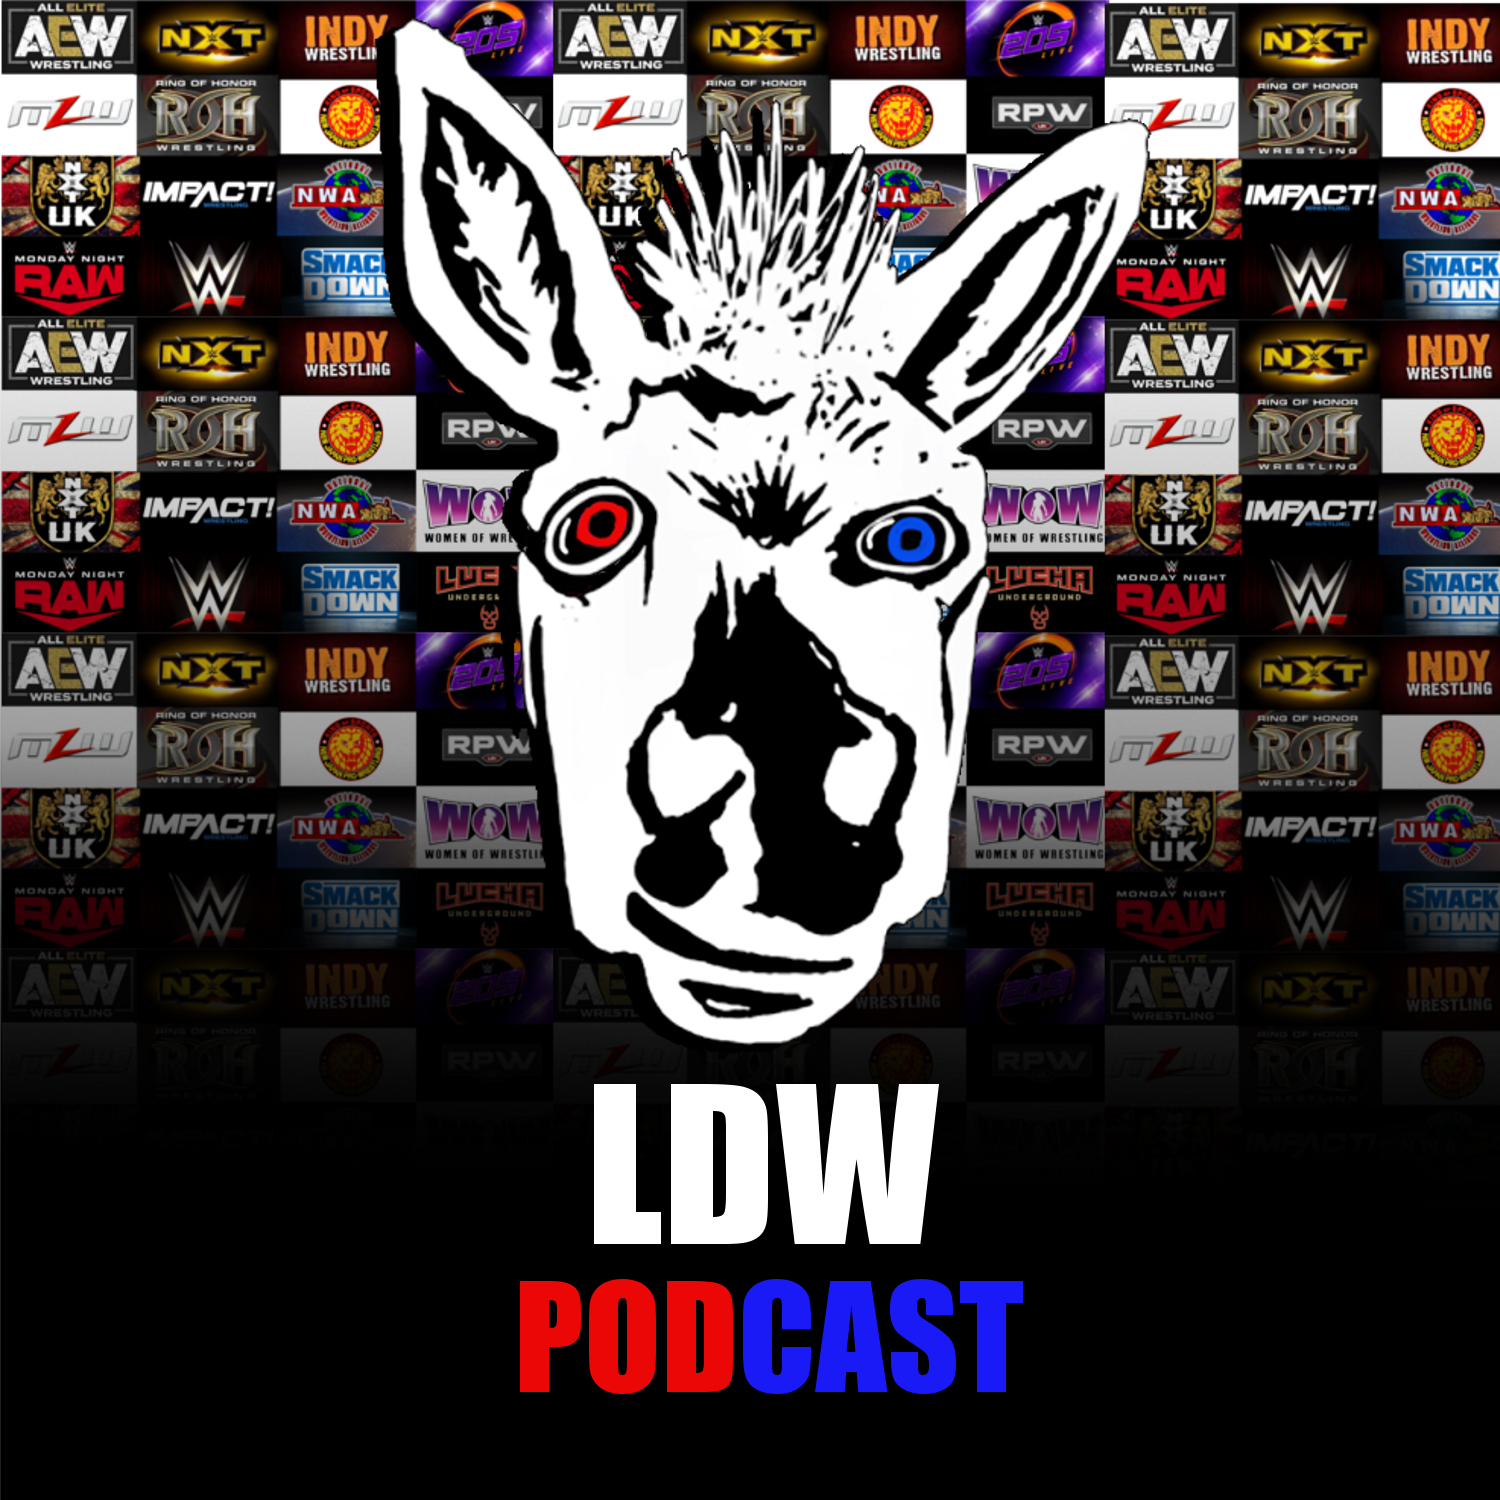 The LD Wrestling Show